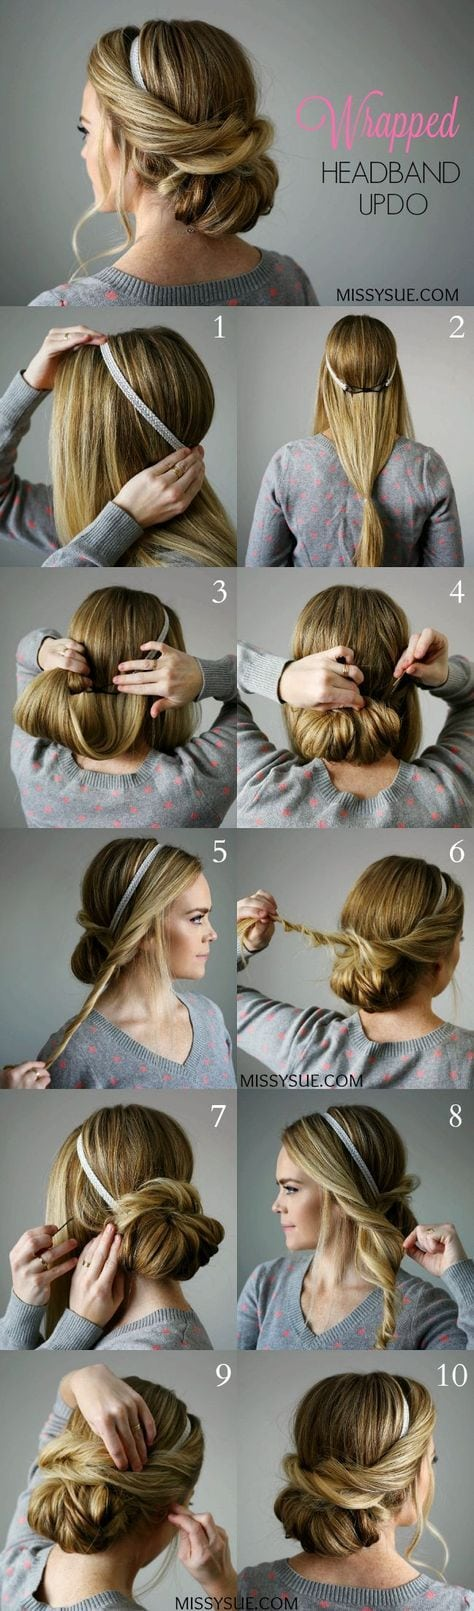 25 Step By Step Tutorial For Beautiful Hair Updos. Source by tsteffey   …